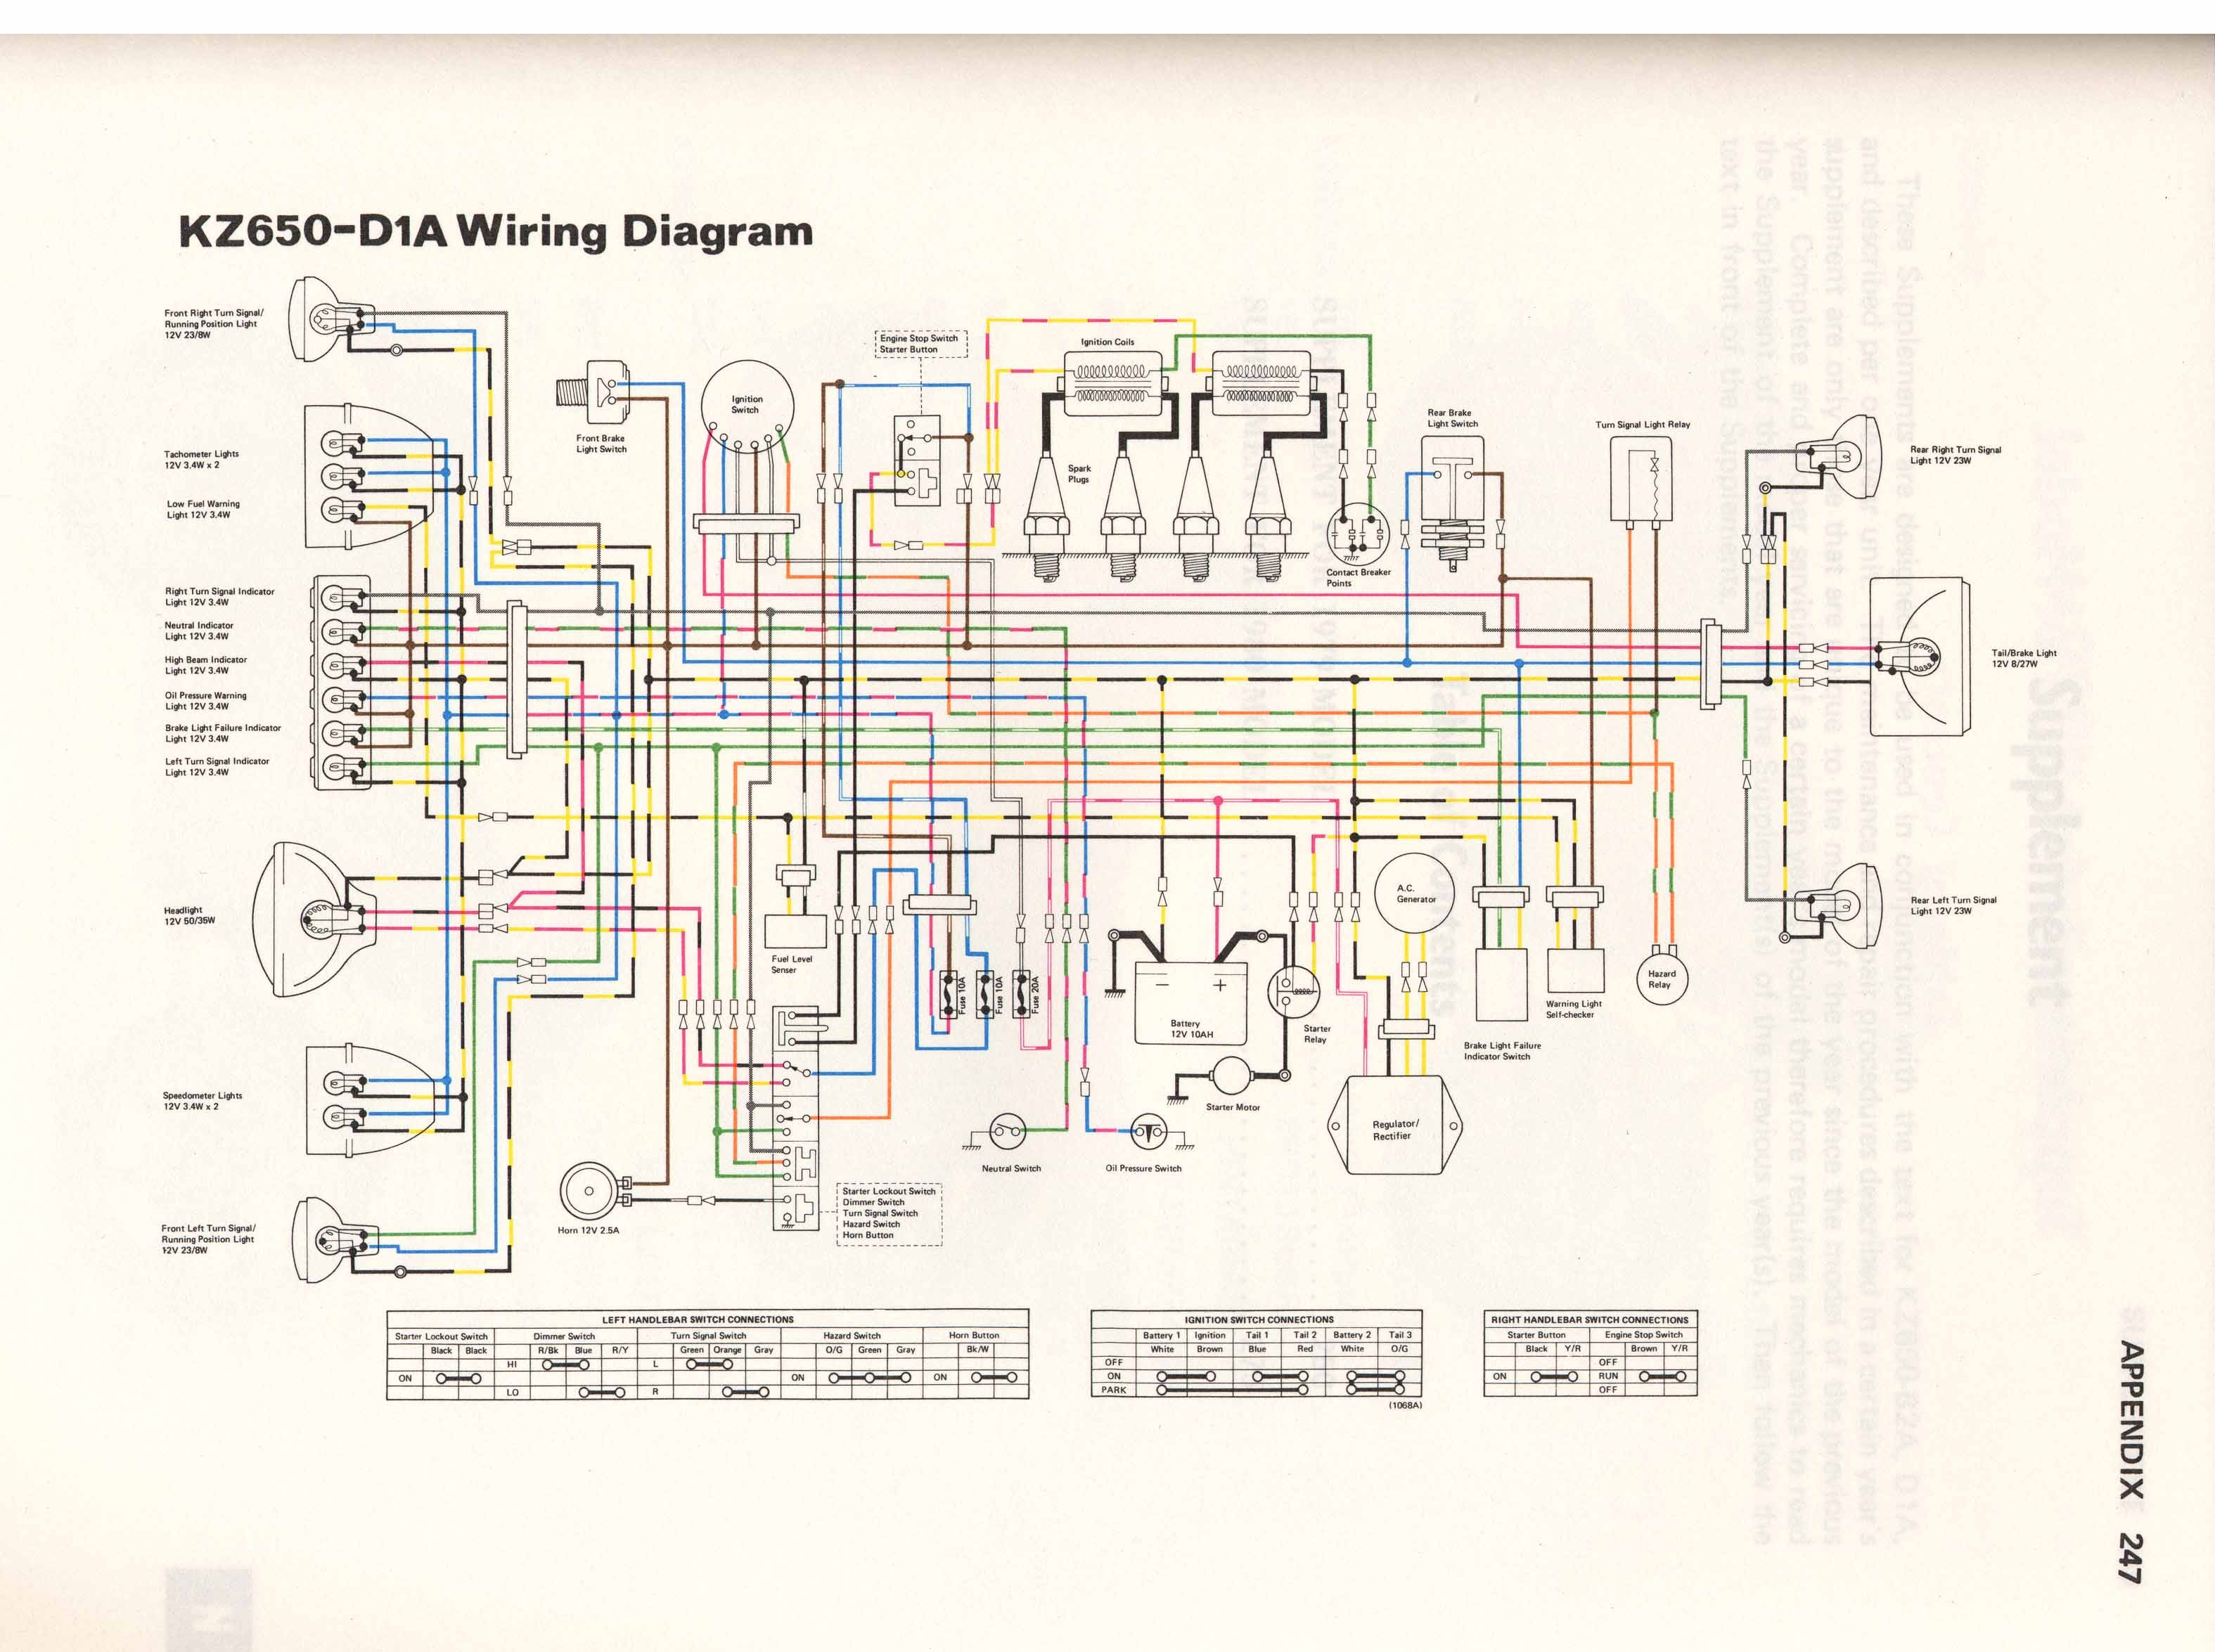 Wiring Diagram For Kawasaki Kz750 Trusted Diagrams Zx7r 1982 750 Complete U2022